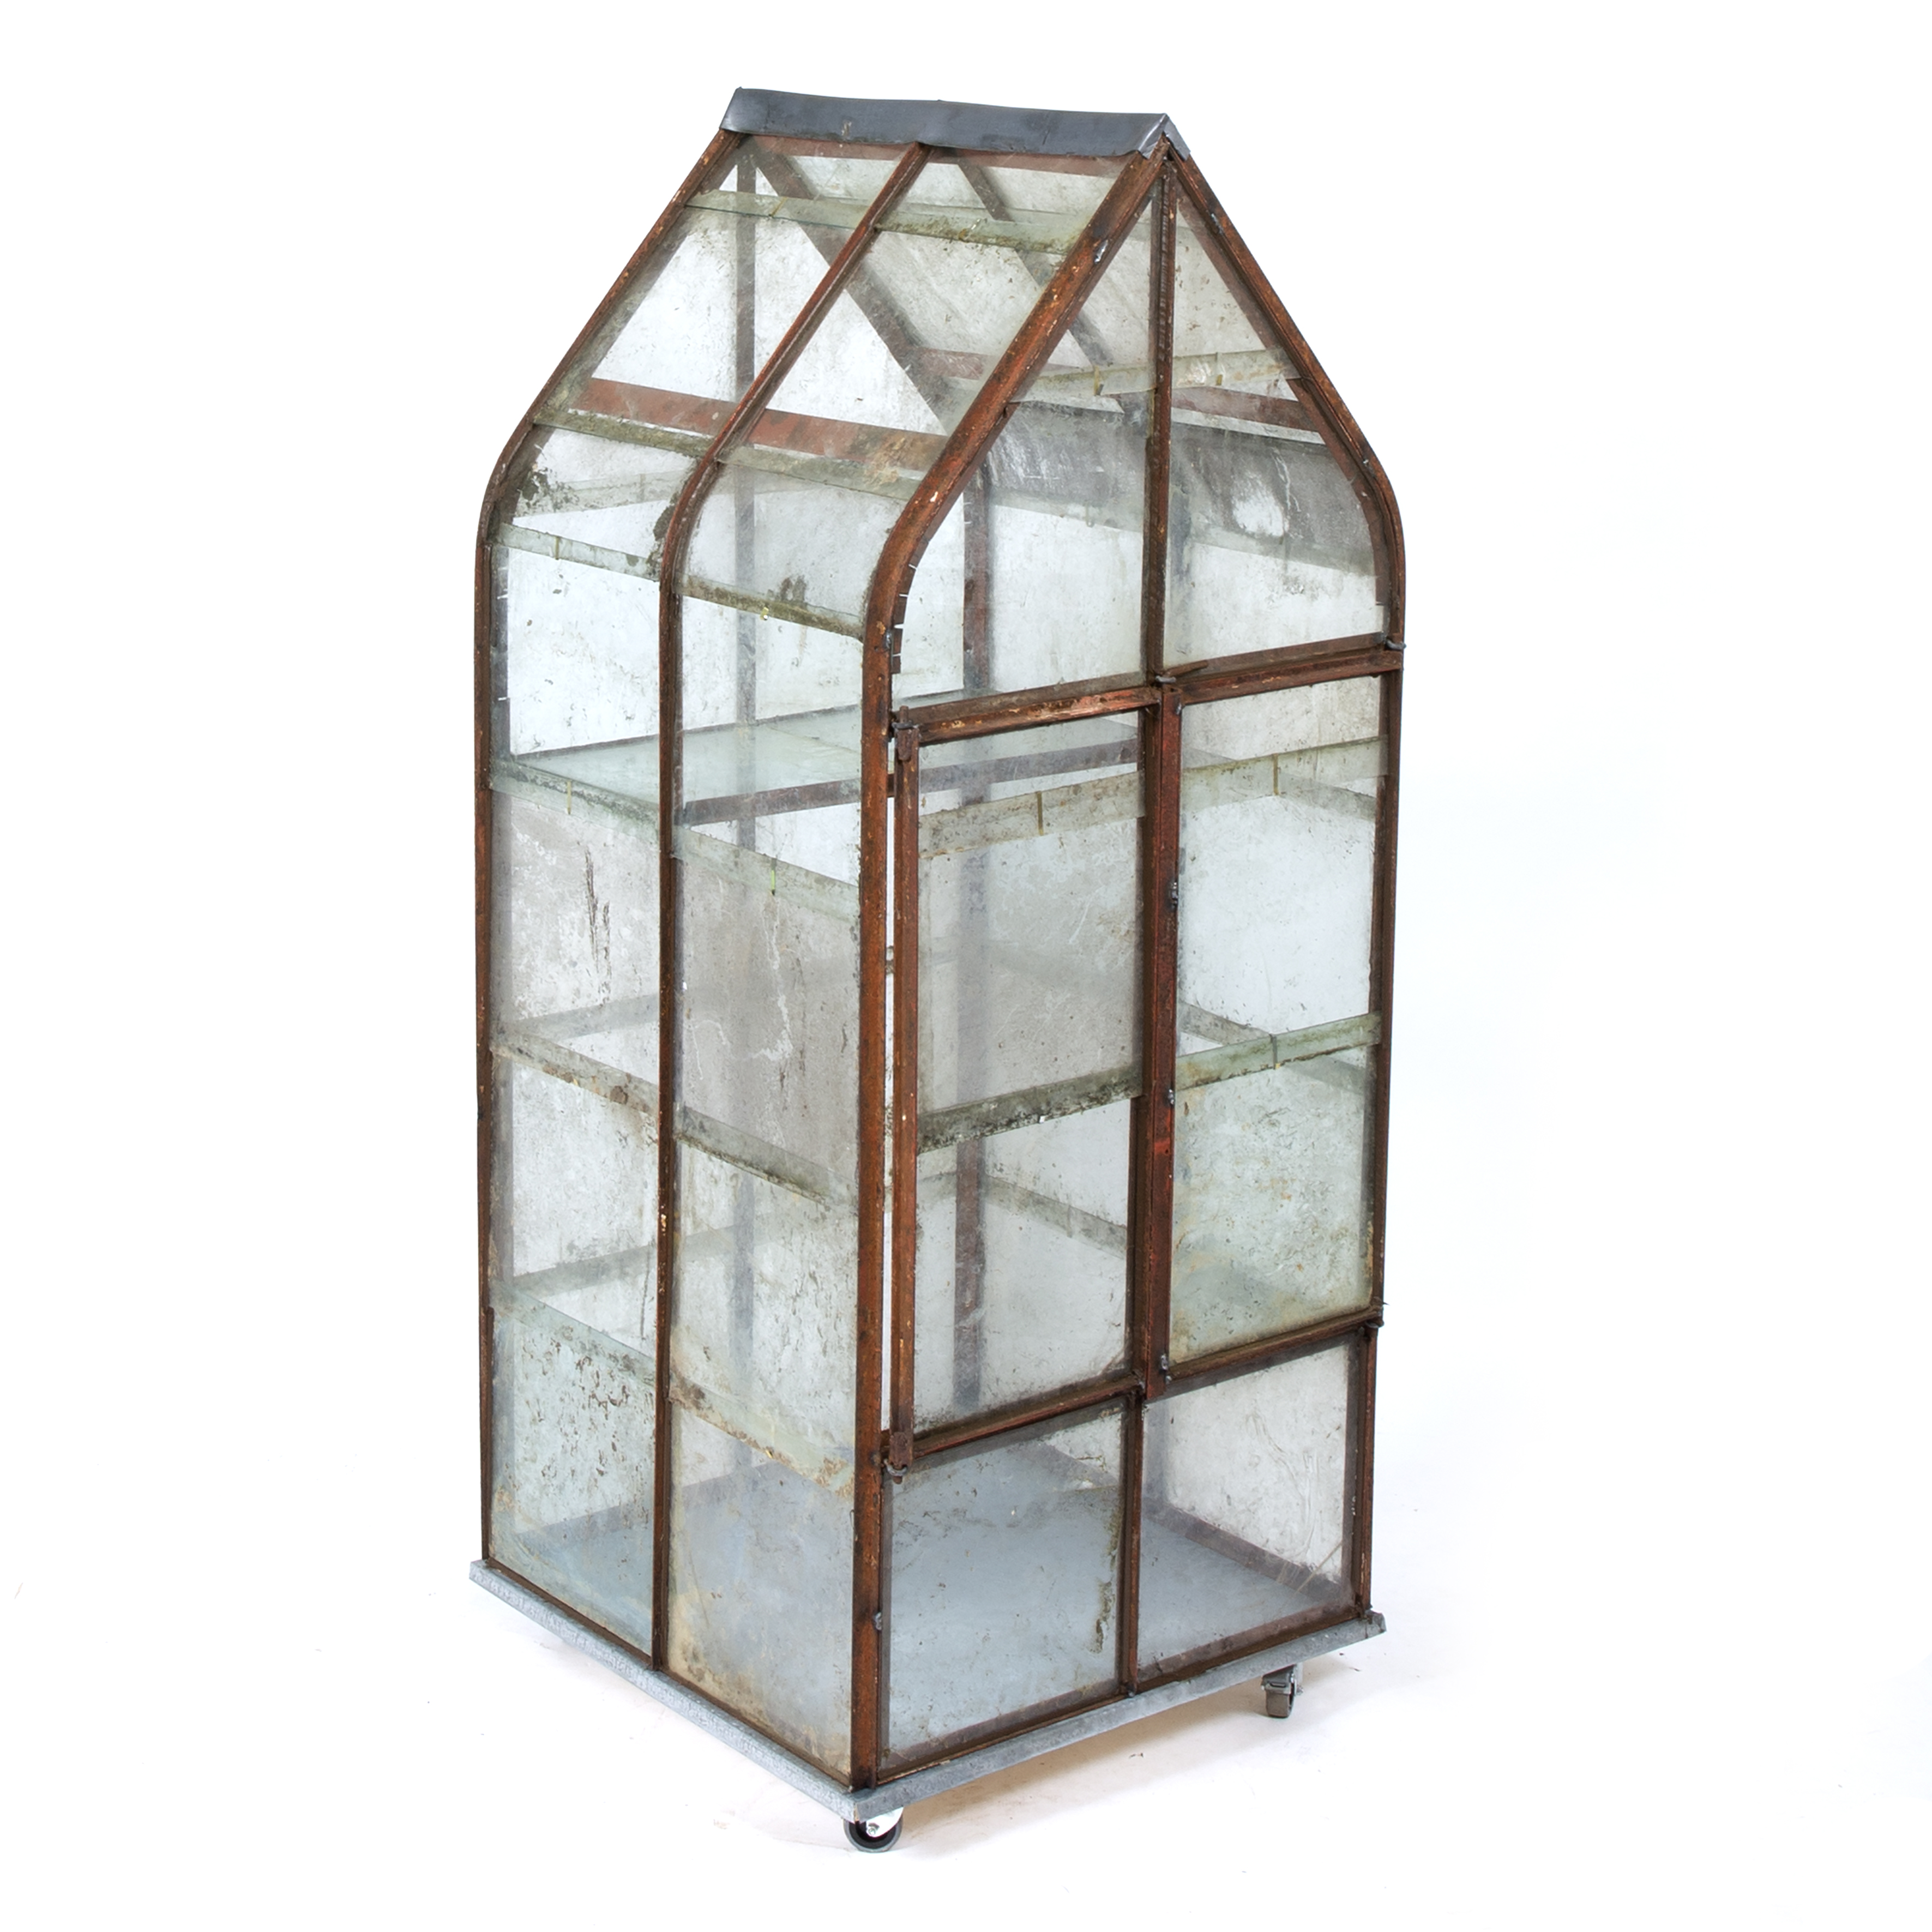 A WROUGHT IRON GLAZED MINIATURE GREEN HOUSE OR FERN HOUSE Image